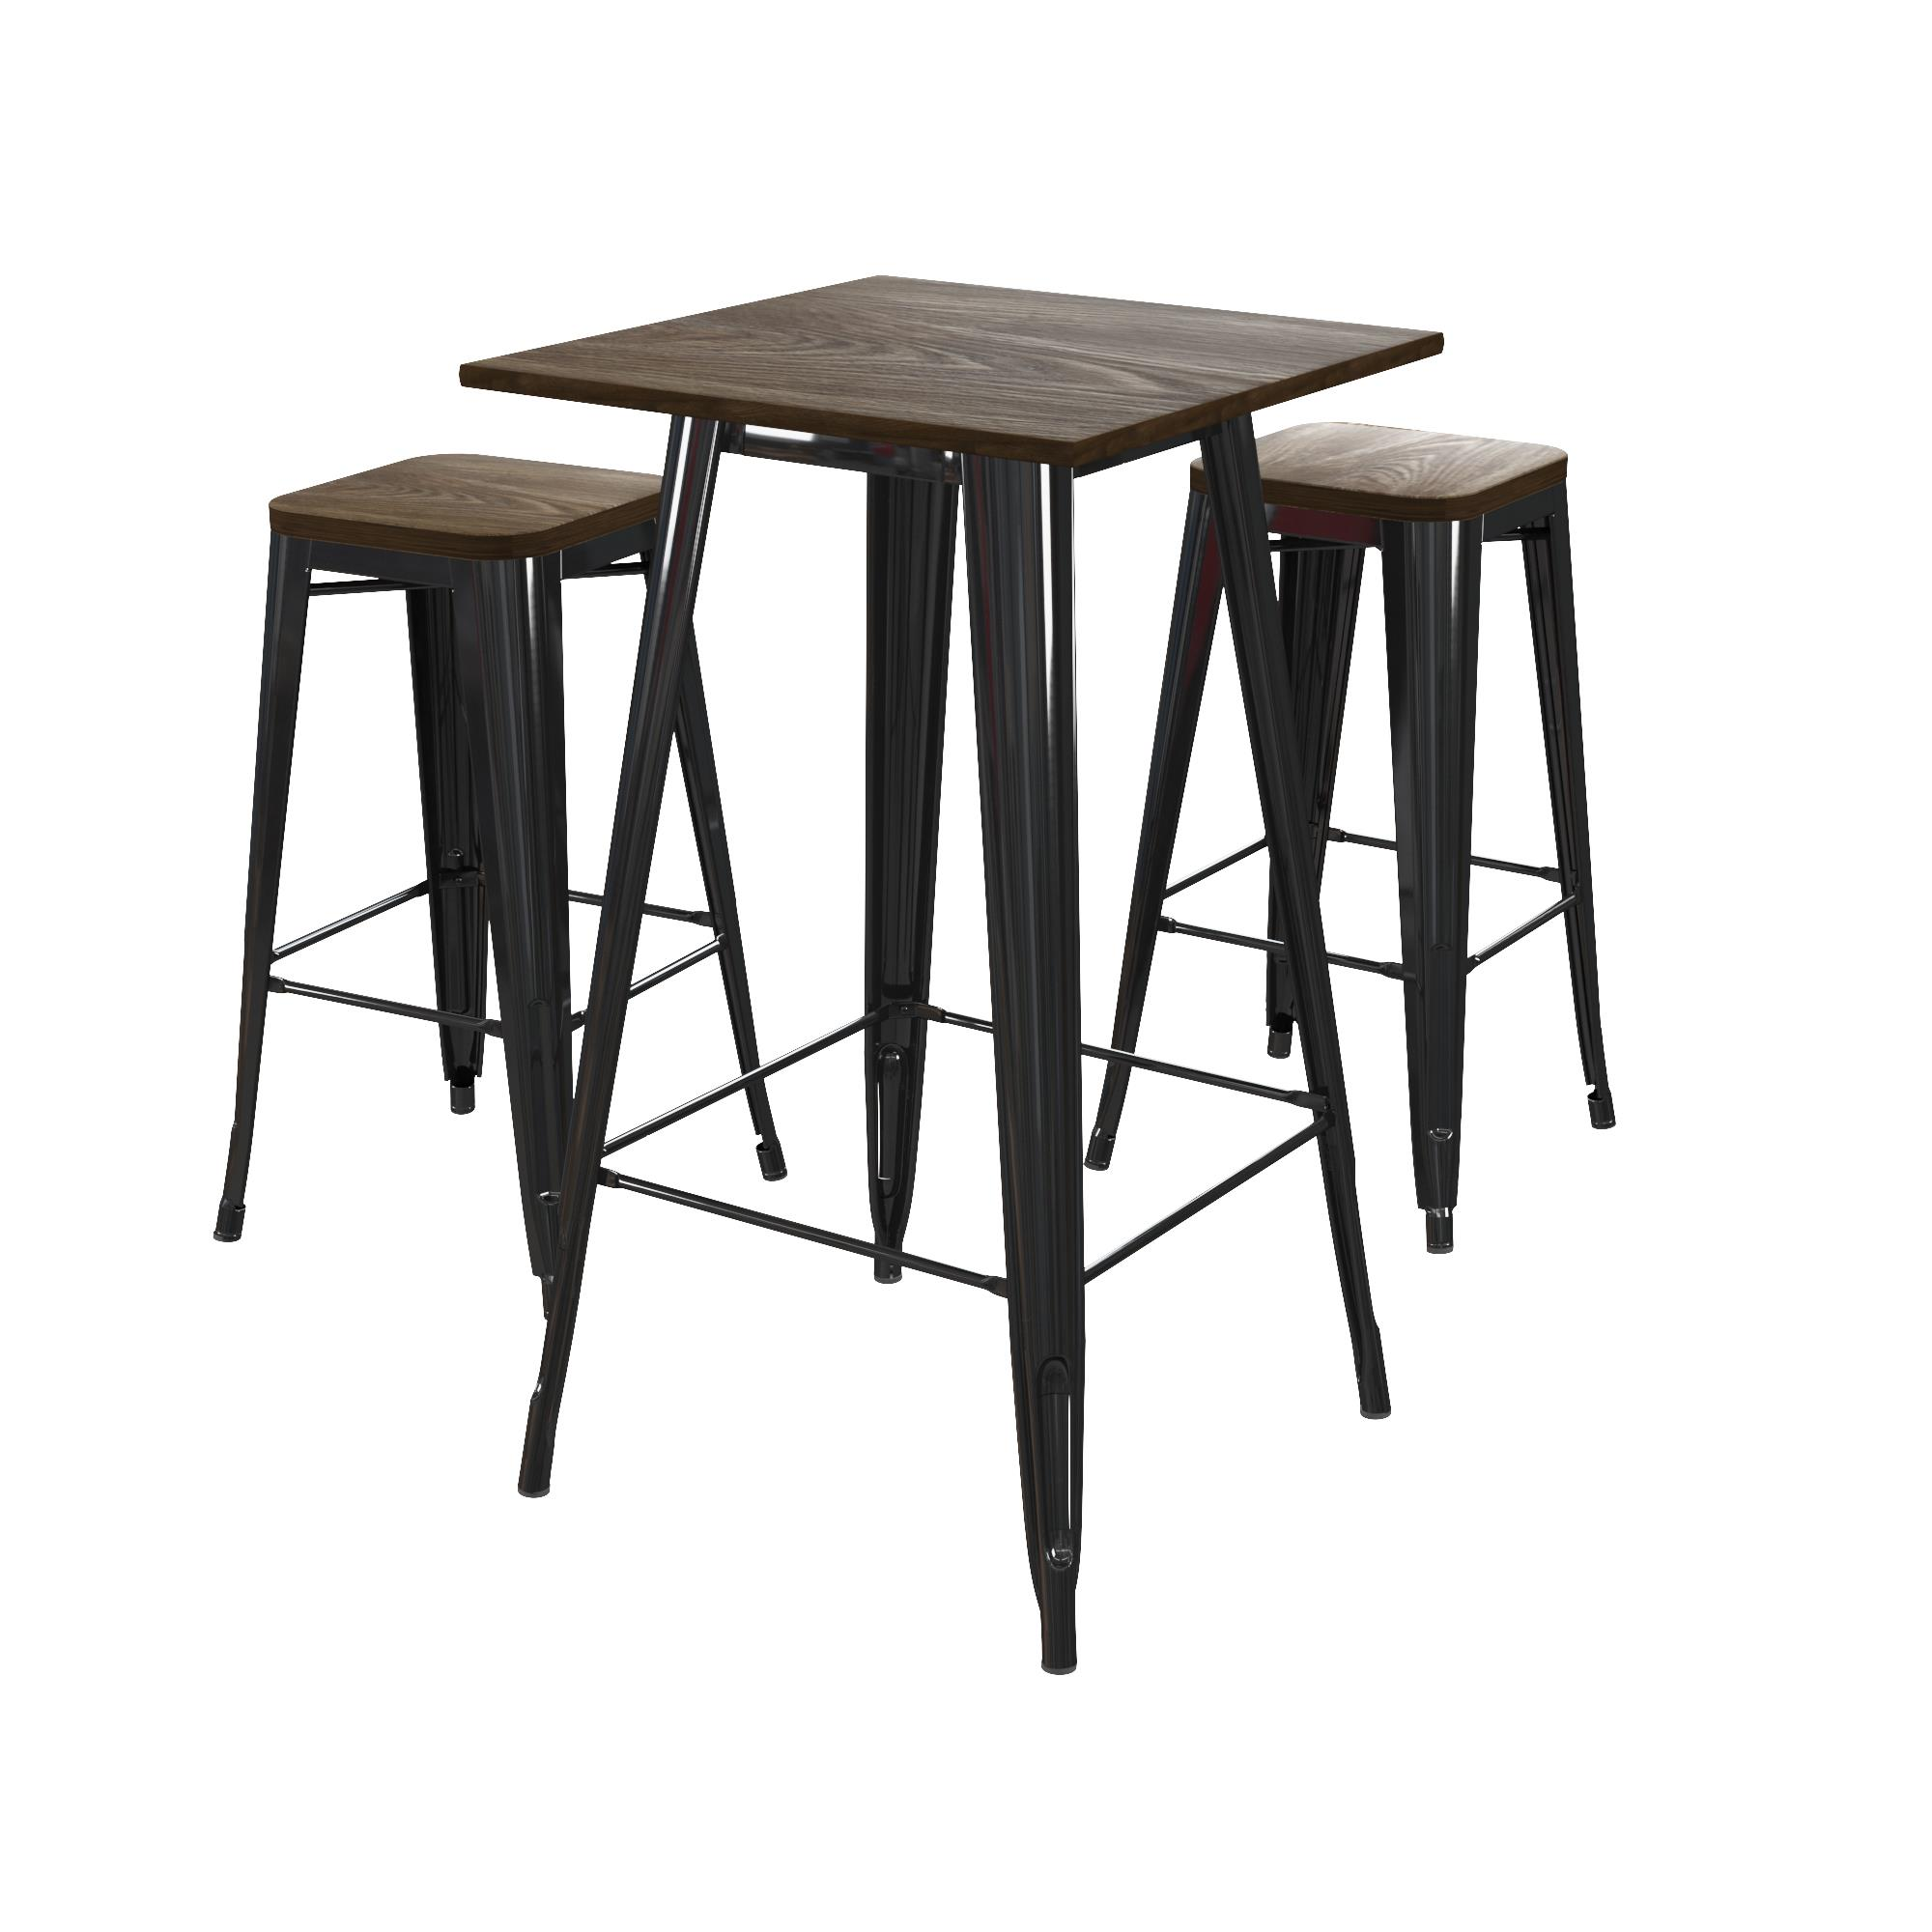 Dhp Fusion 30 Metal Bar Stool With Wood Seat Black Set Of 2